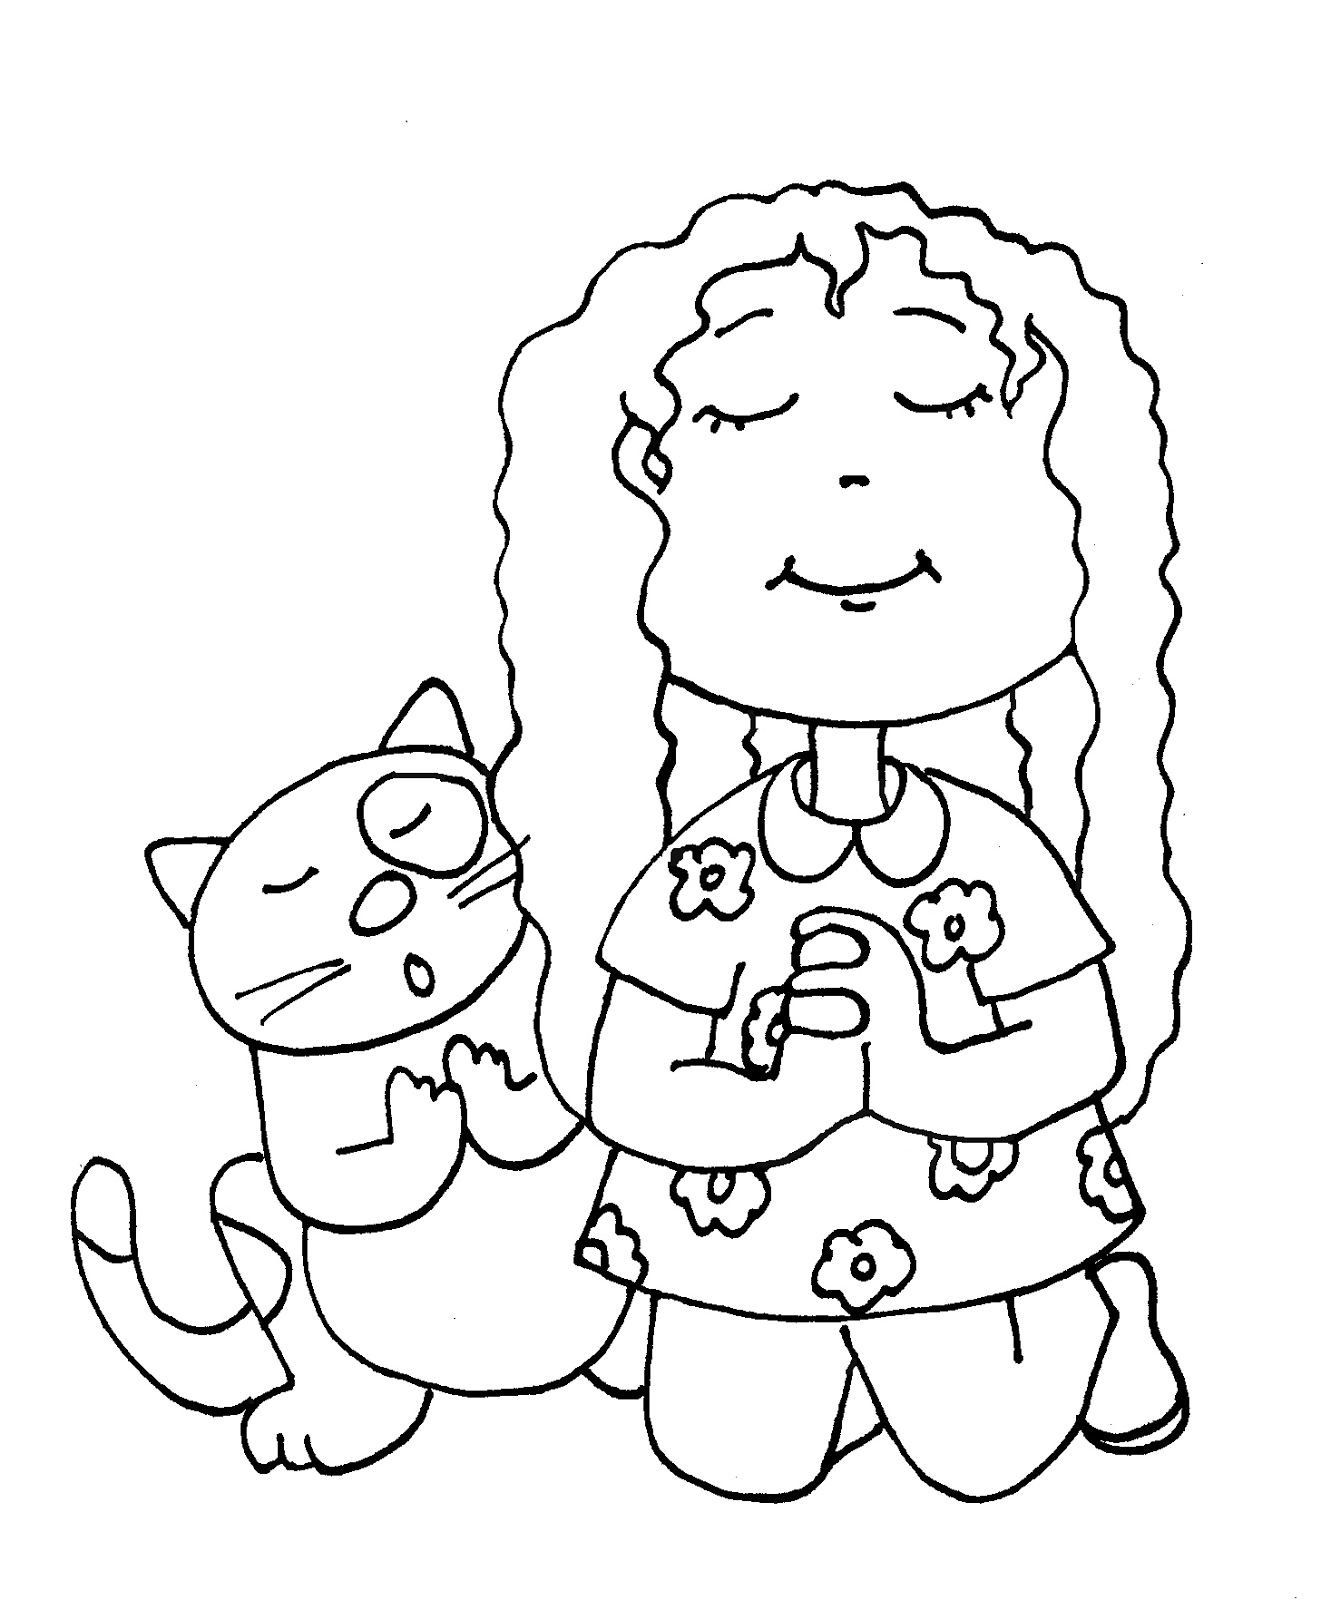 Free Dearie Dolls Digi Stamps: Praying Hands and Paws